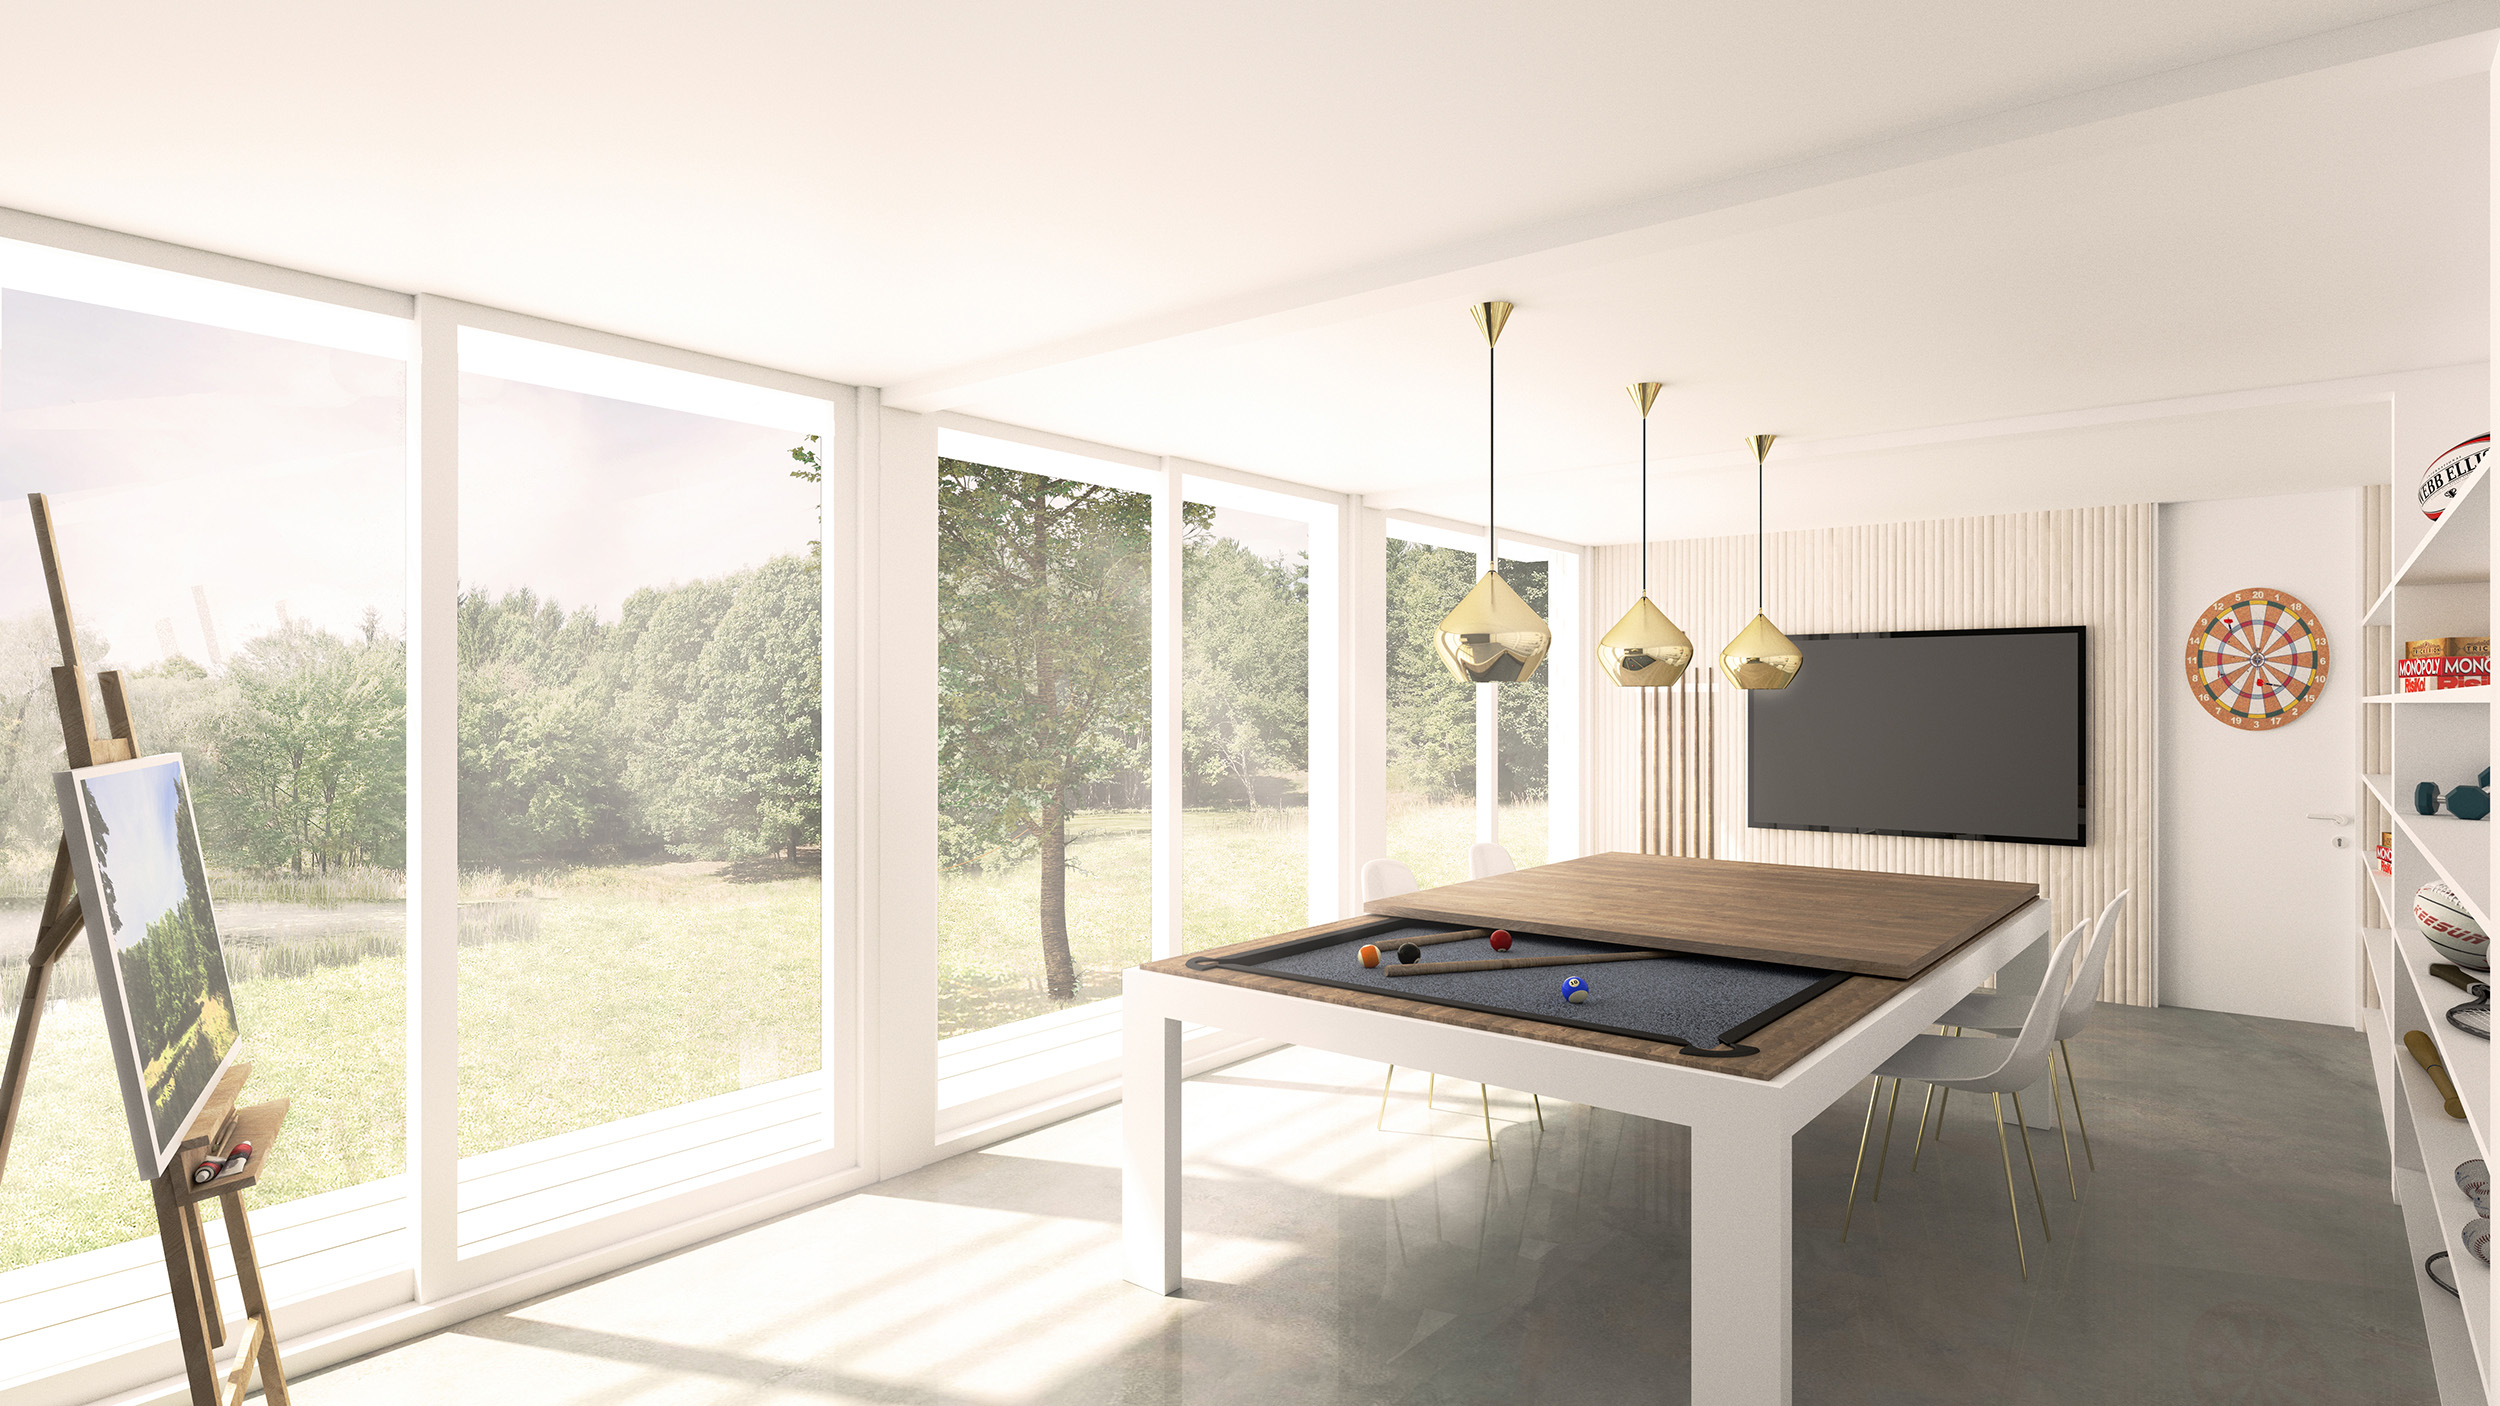 The minimalist south-facing 350 sq ft 'flex-space' adjoining the 2-car garage, is full of natural light, and can become a games room, artists studio, entertainment space, rumpus room or a workshop.